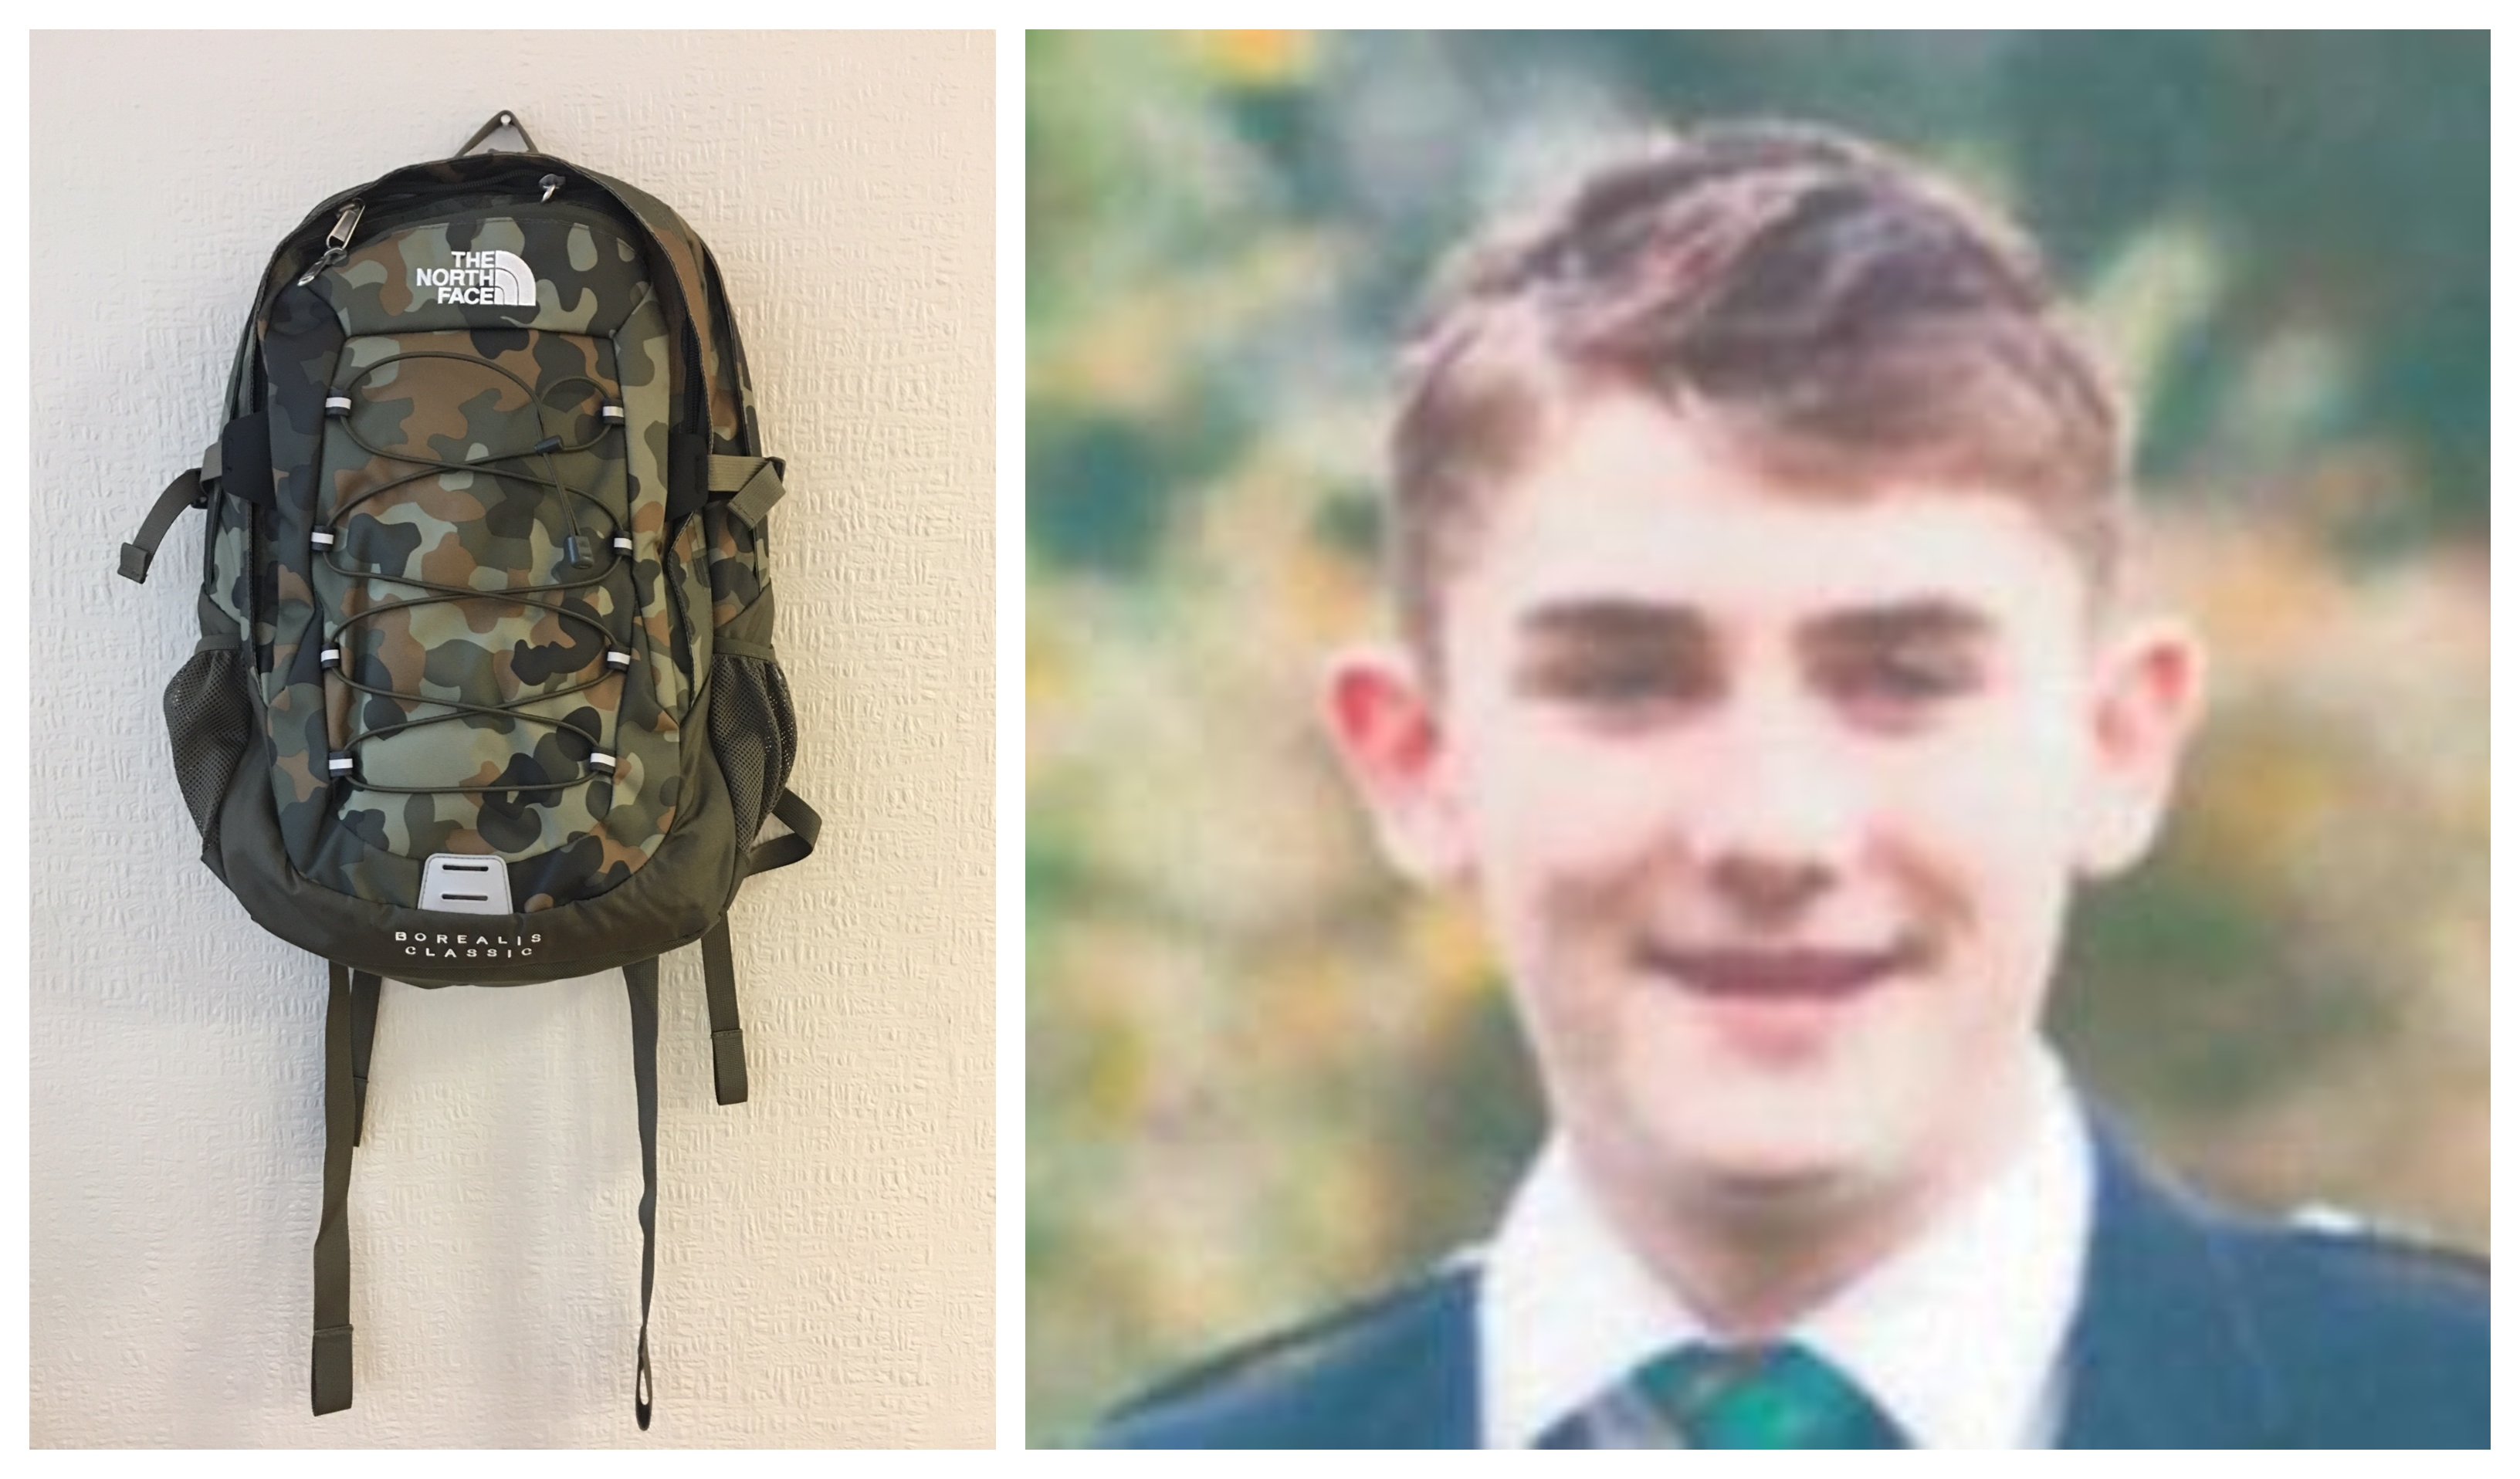 Liam Smith, right, and, left, the rucksack he was wearing when he was last seen.